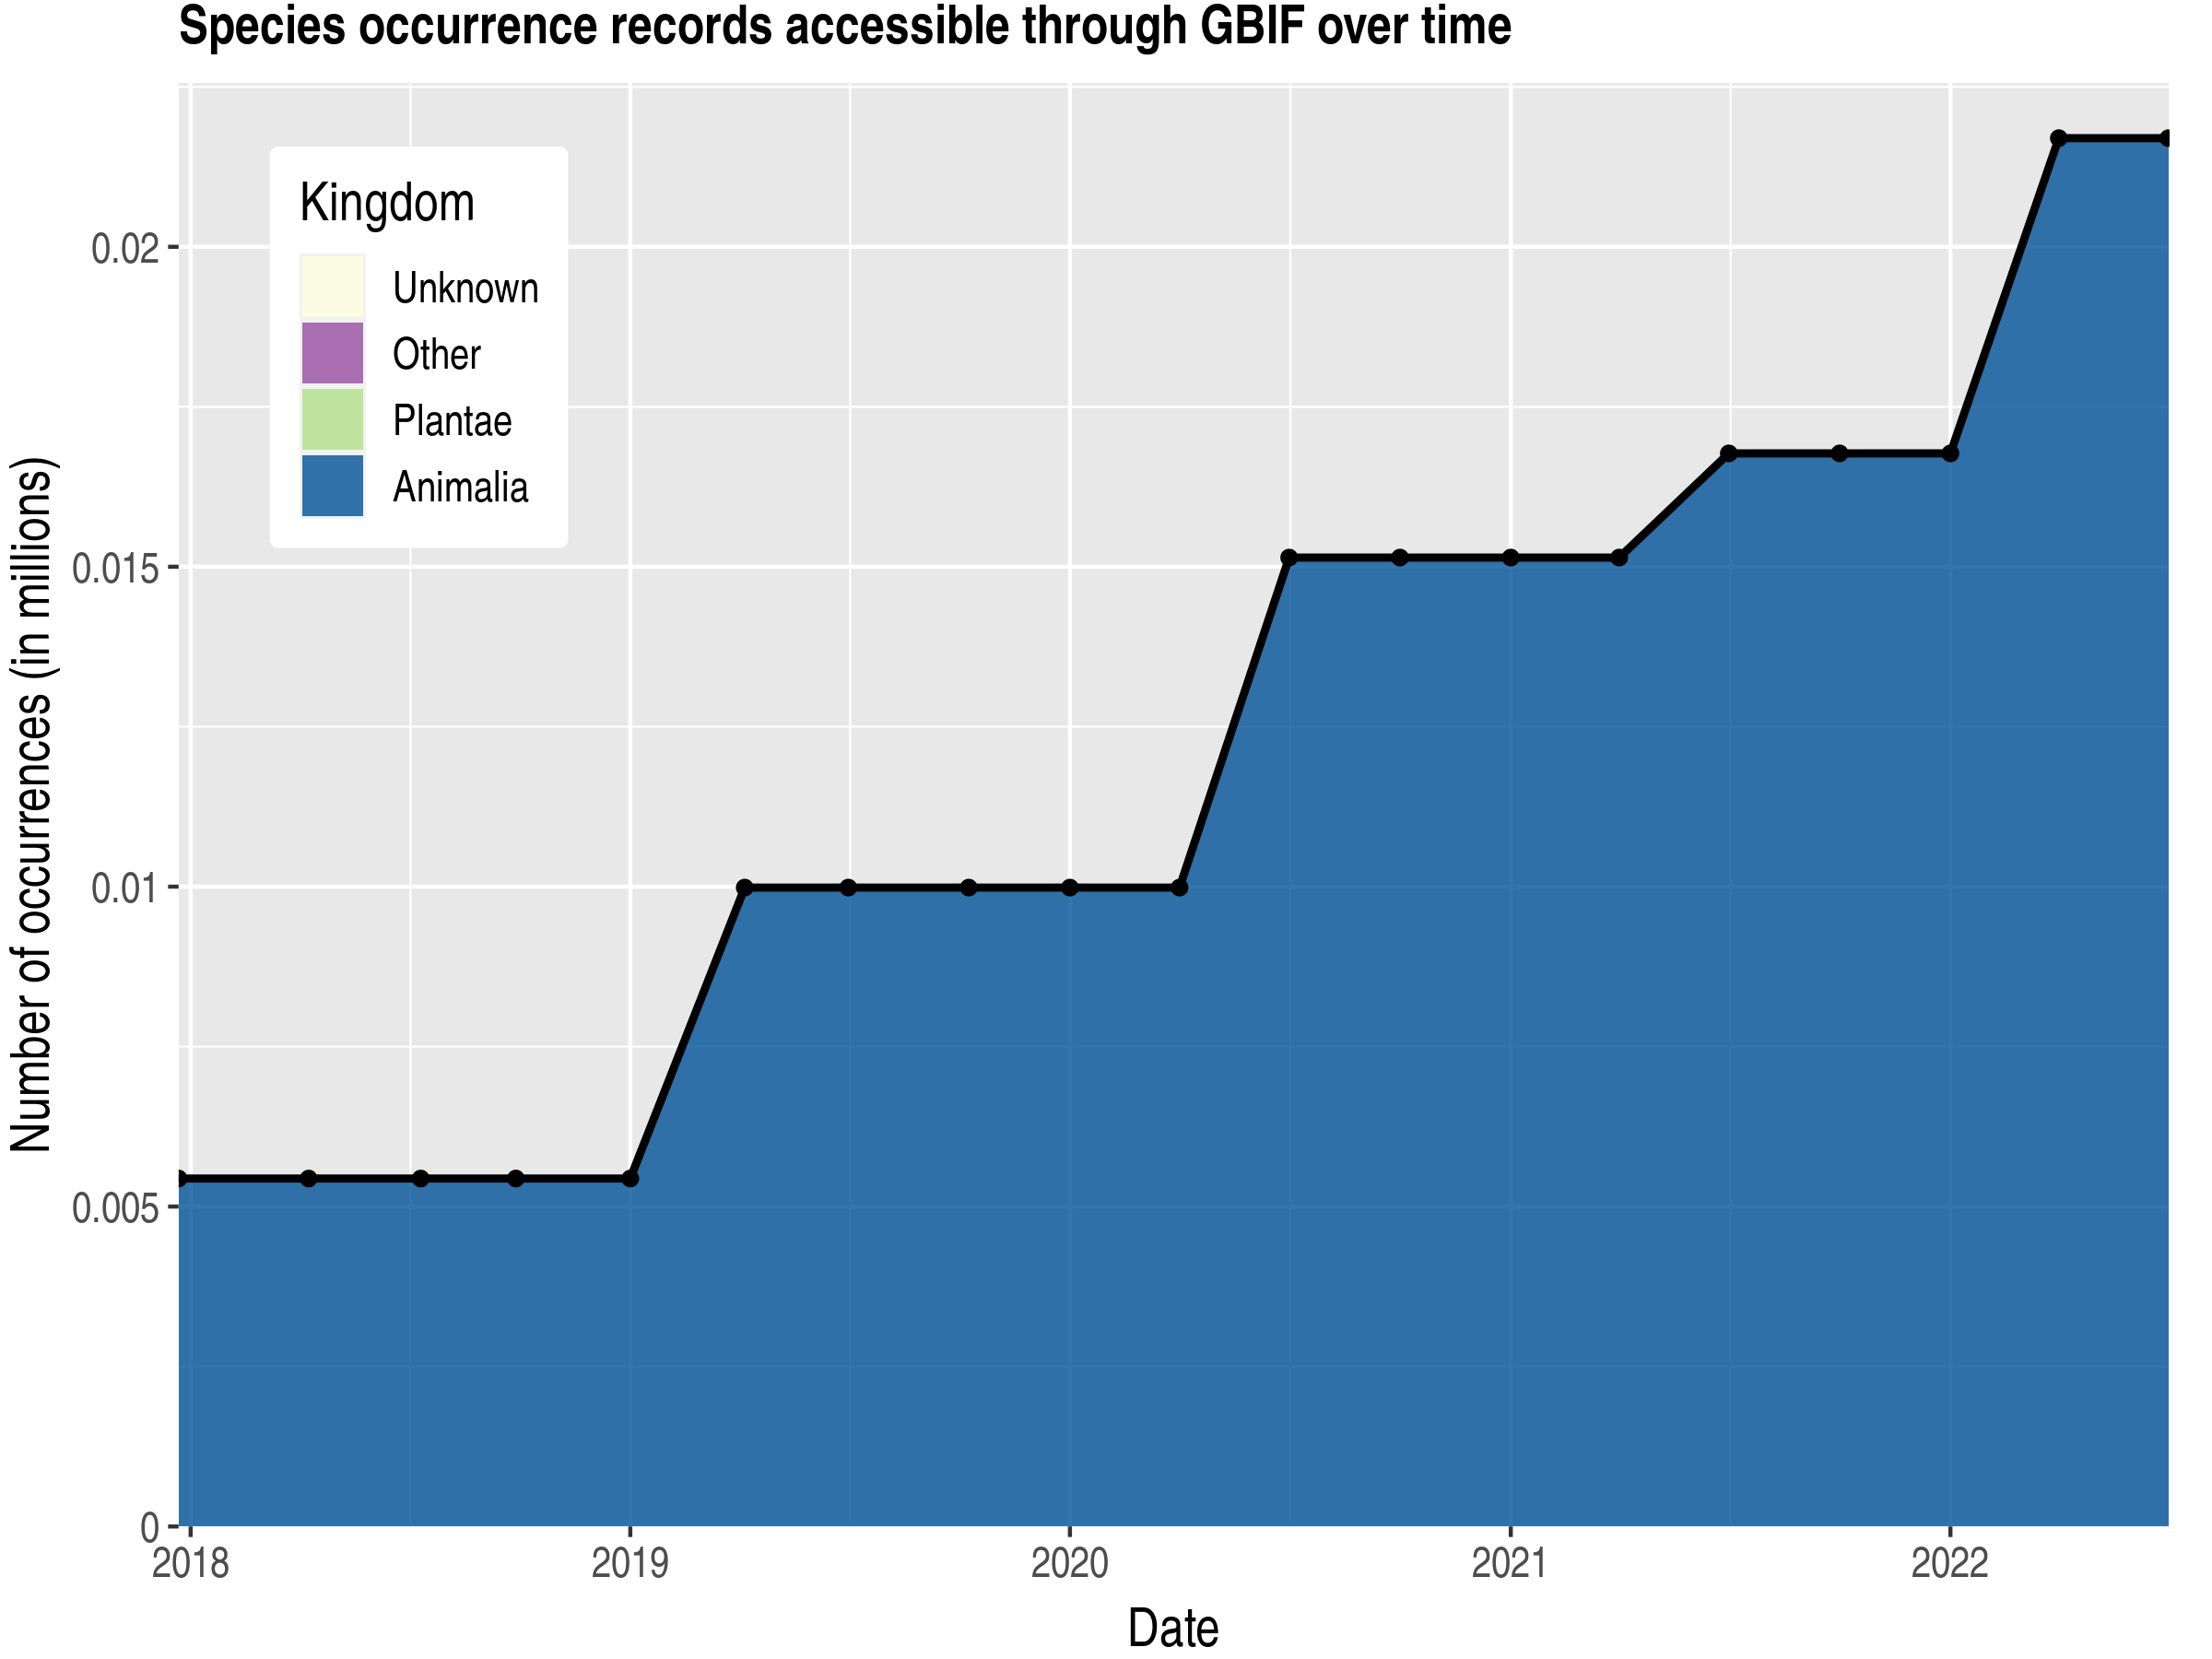 Data trend of records by kingdom published by French Polynesia